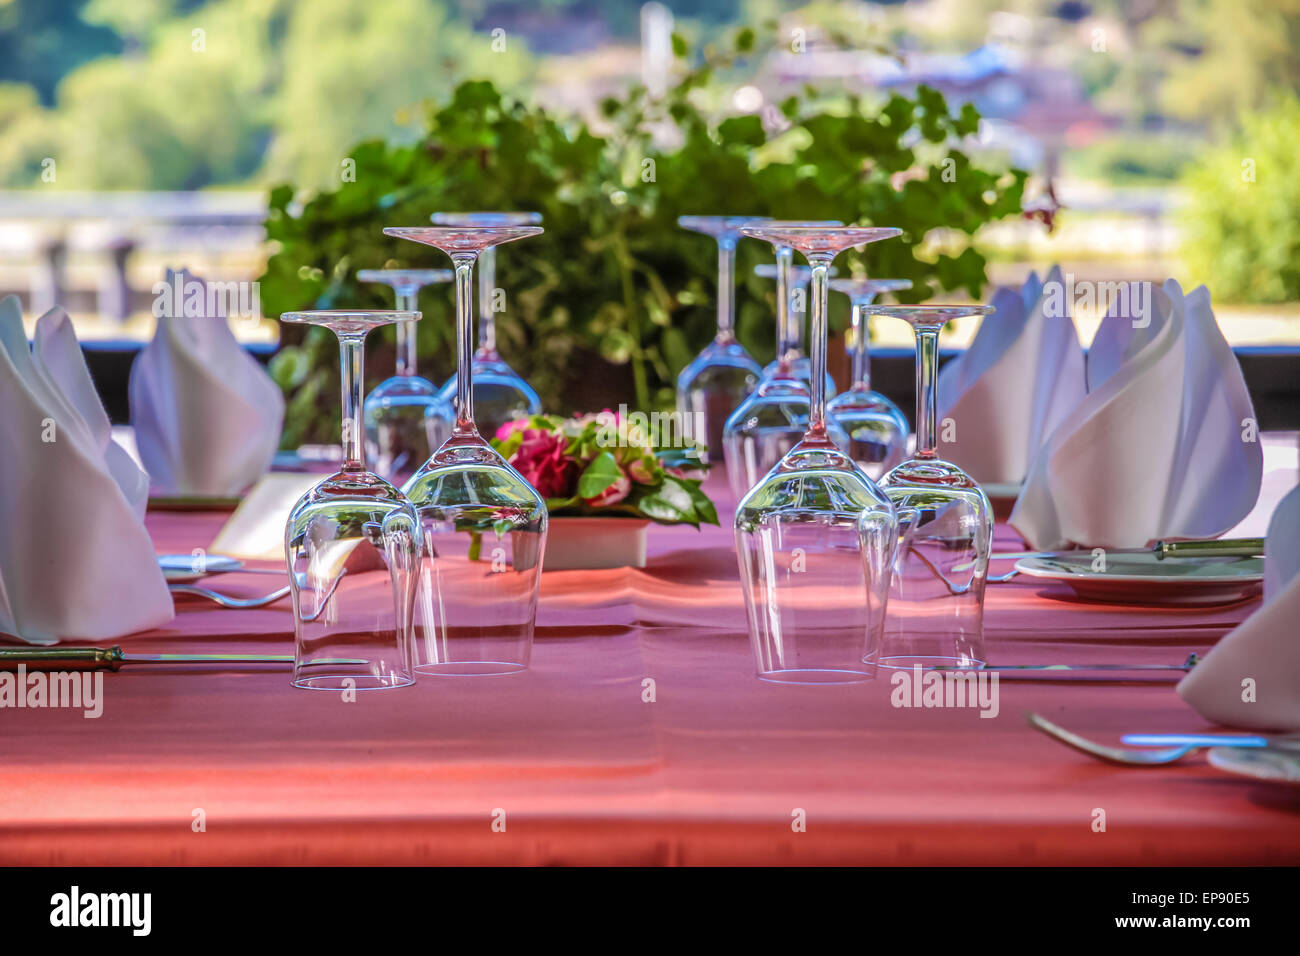 Solemnly laid table with wine glasses, outdoor - Stock Image